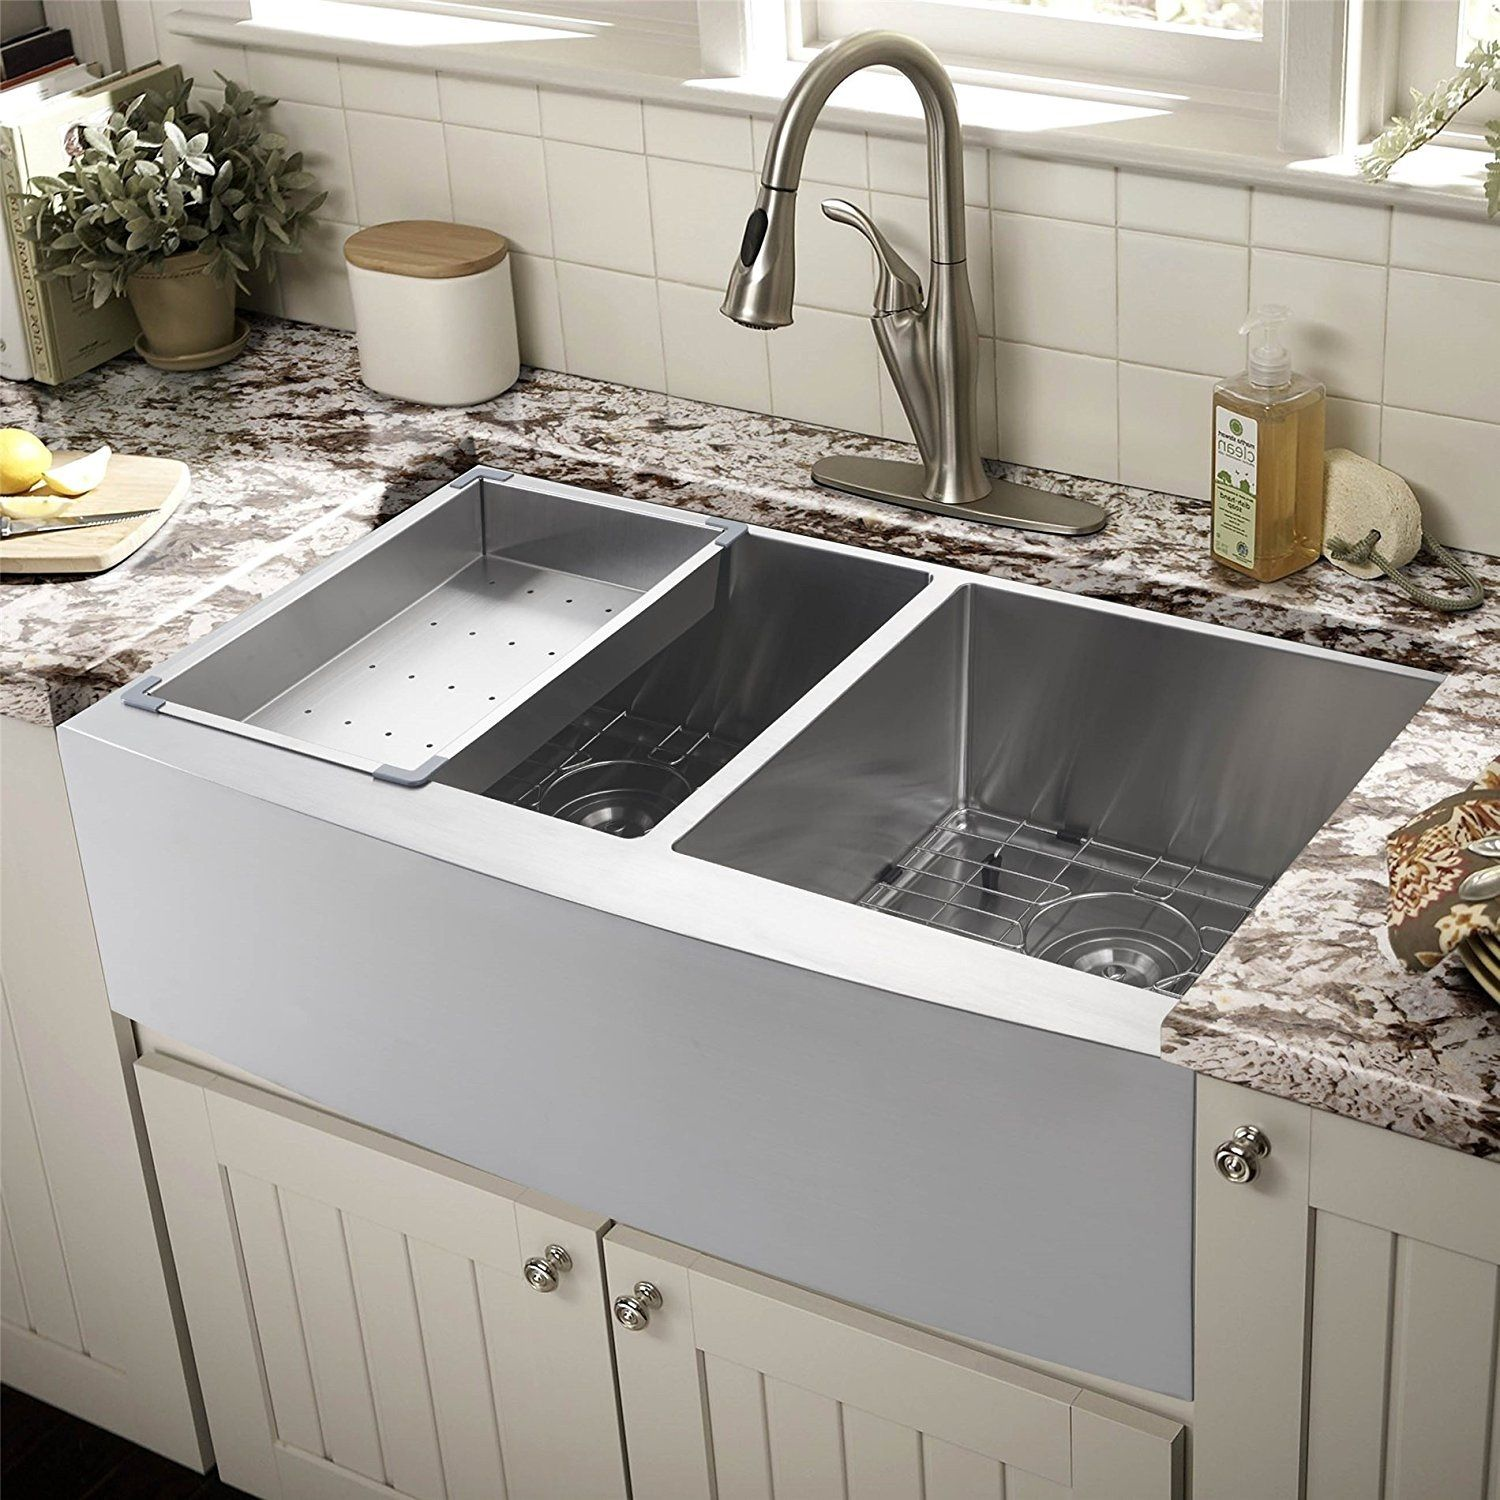 Farmhouse Sinks Farmhouse Goals Farmhouse Sink Kitchen Best Kitchen Sinks Stainless Steel Farmhouse Sink